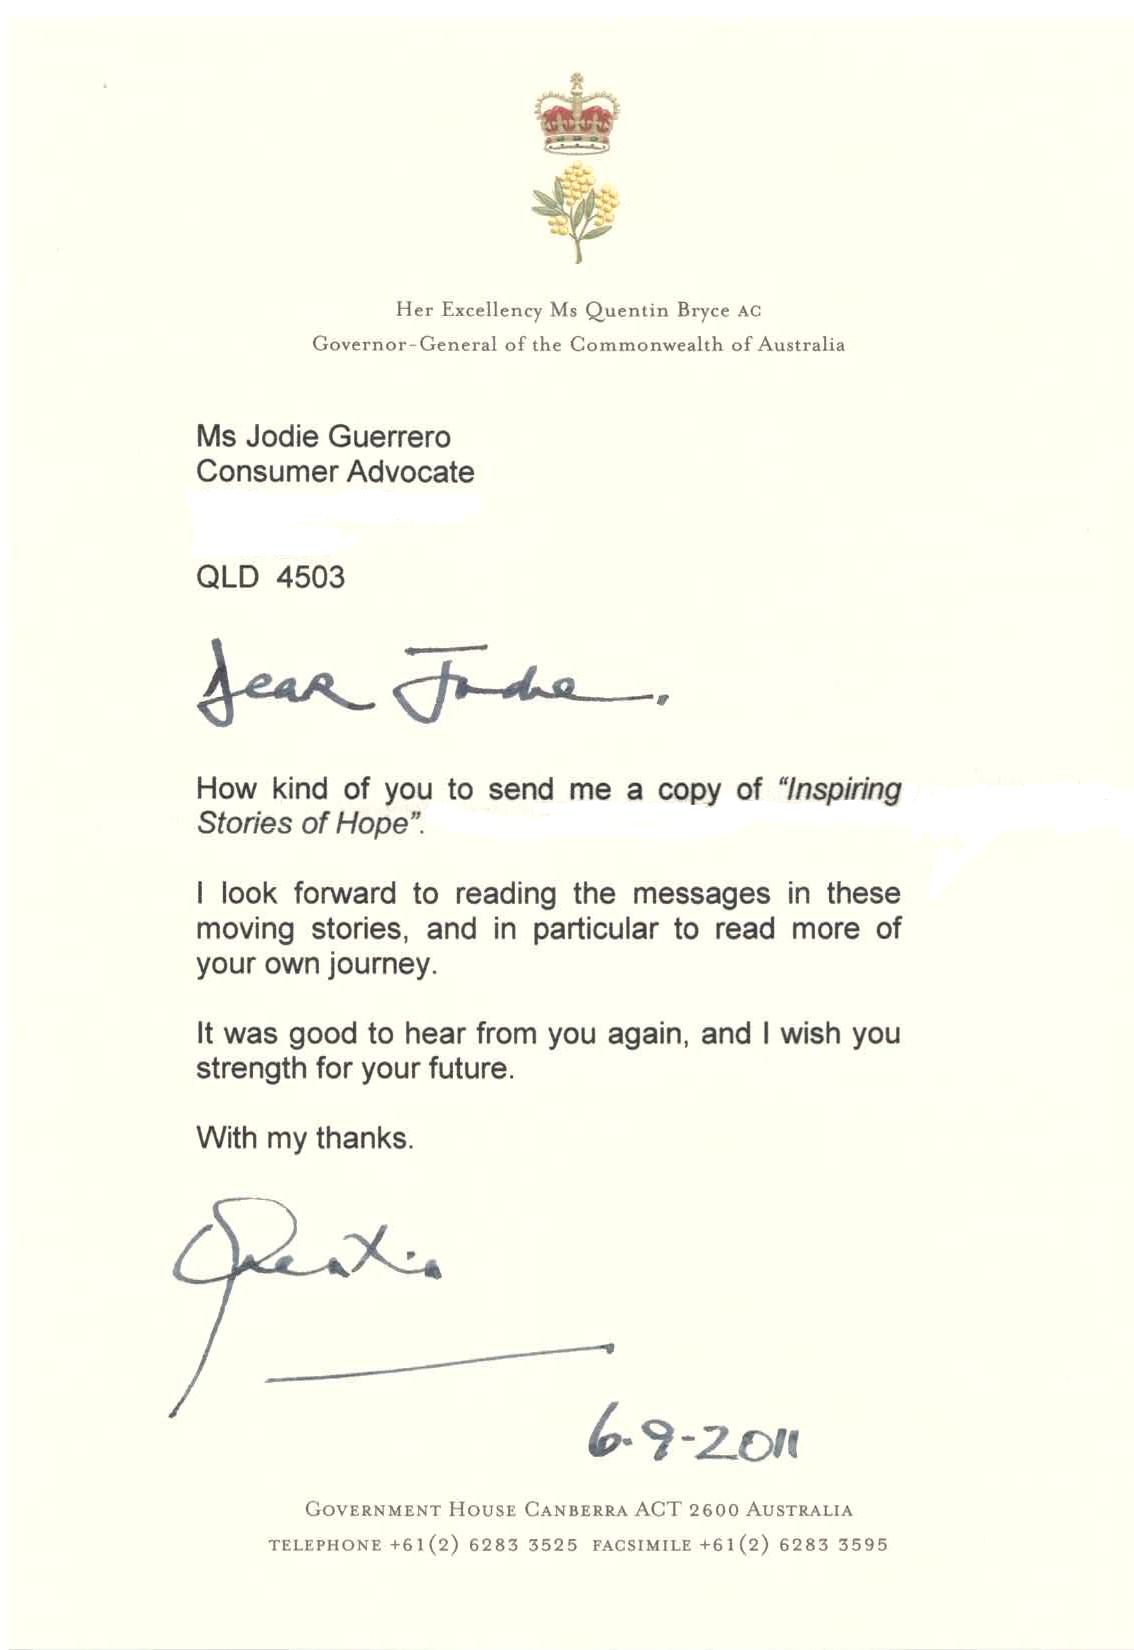 Letter From The Governorgeneral Of Themonwealth Of Australia (02)